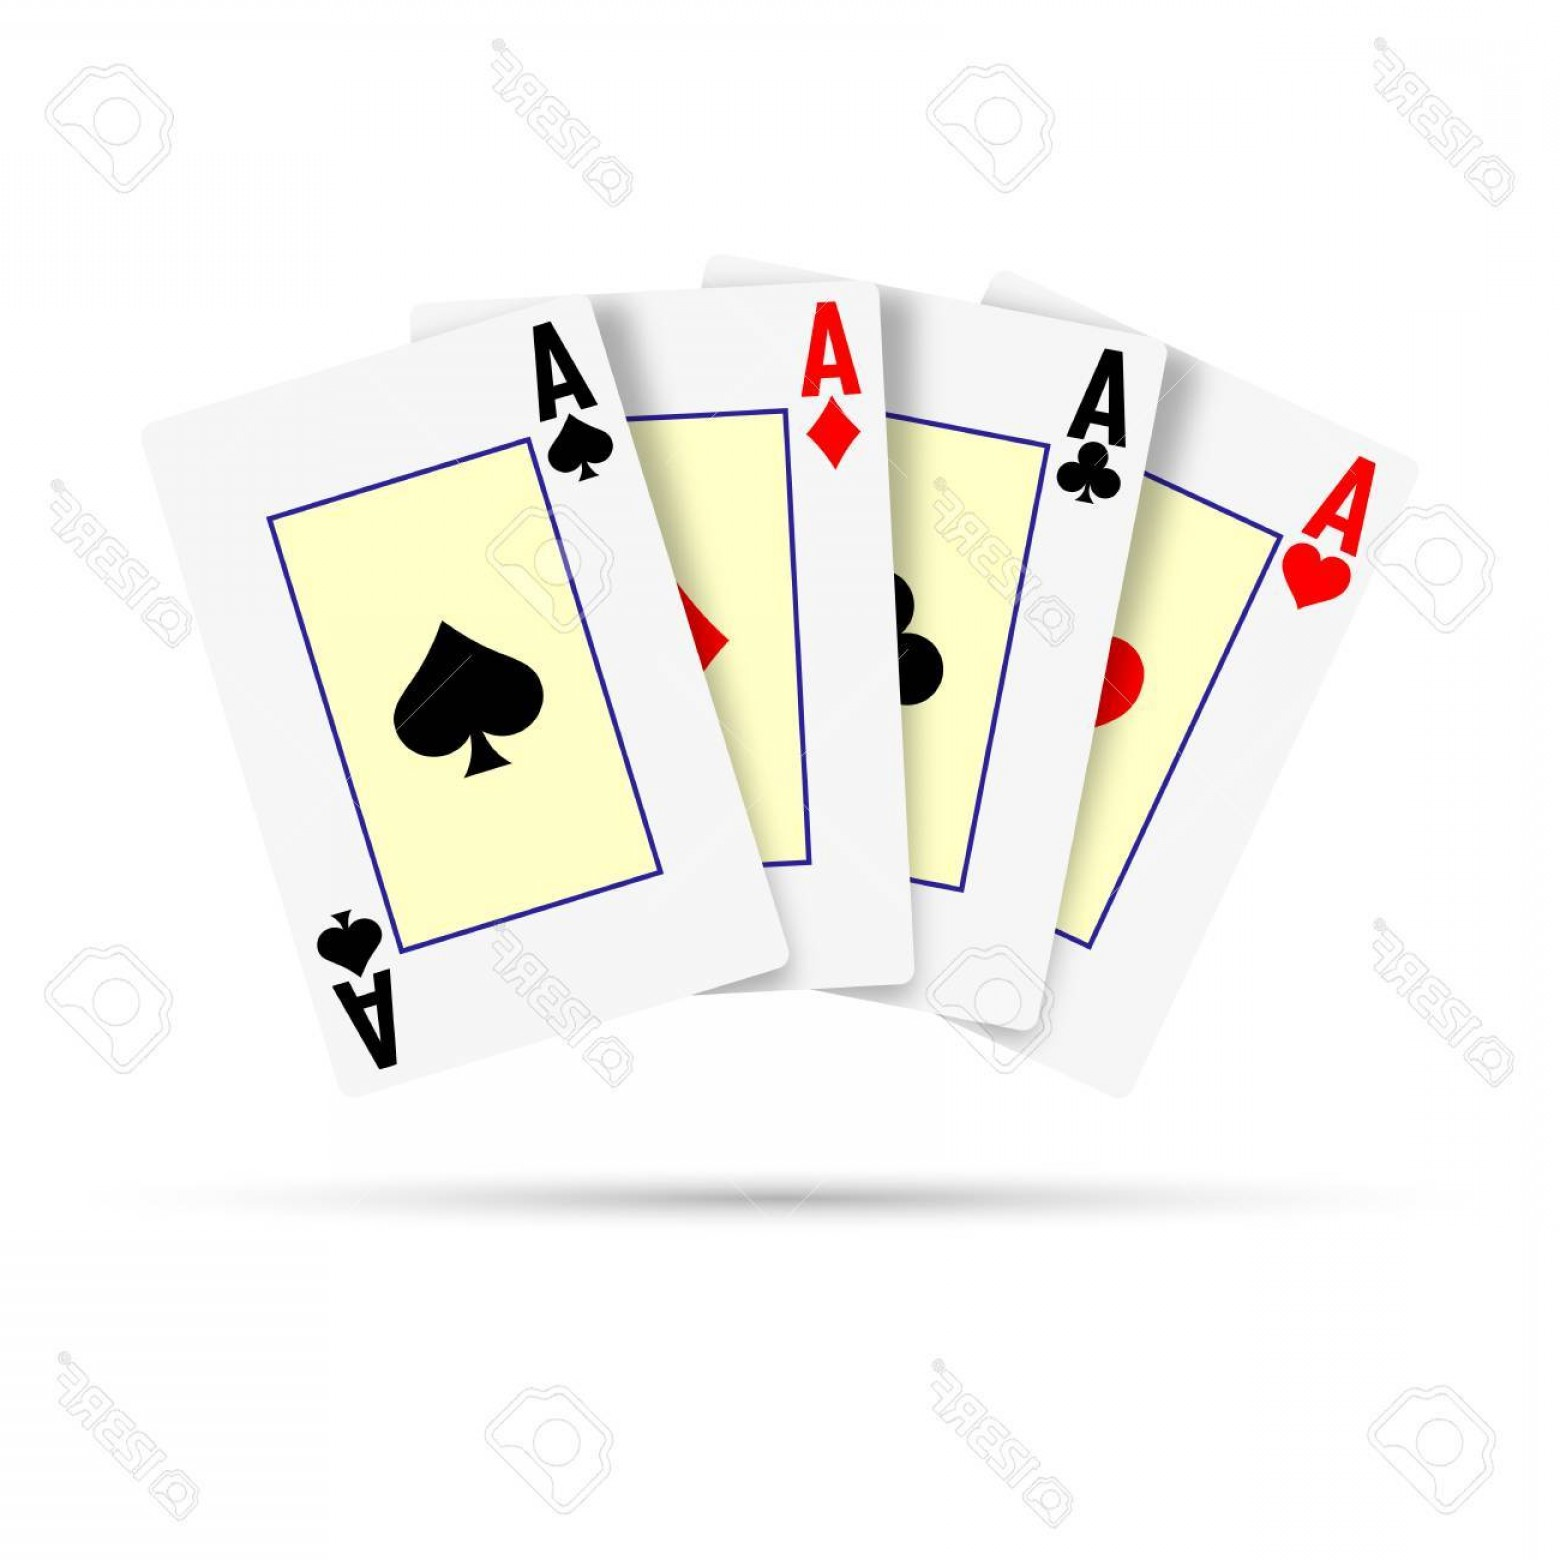 Poker Hand Vector: Photostock Vector Four Aces On A White Background Poker Hand Vector Illustration